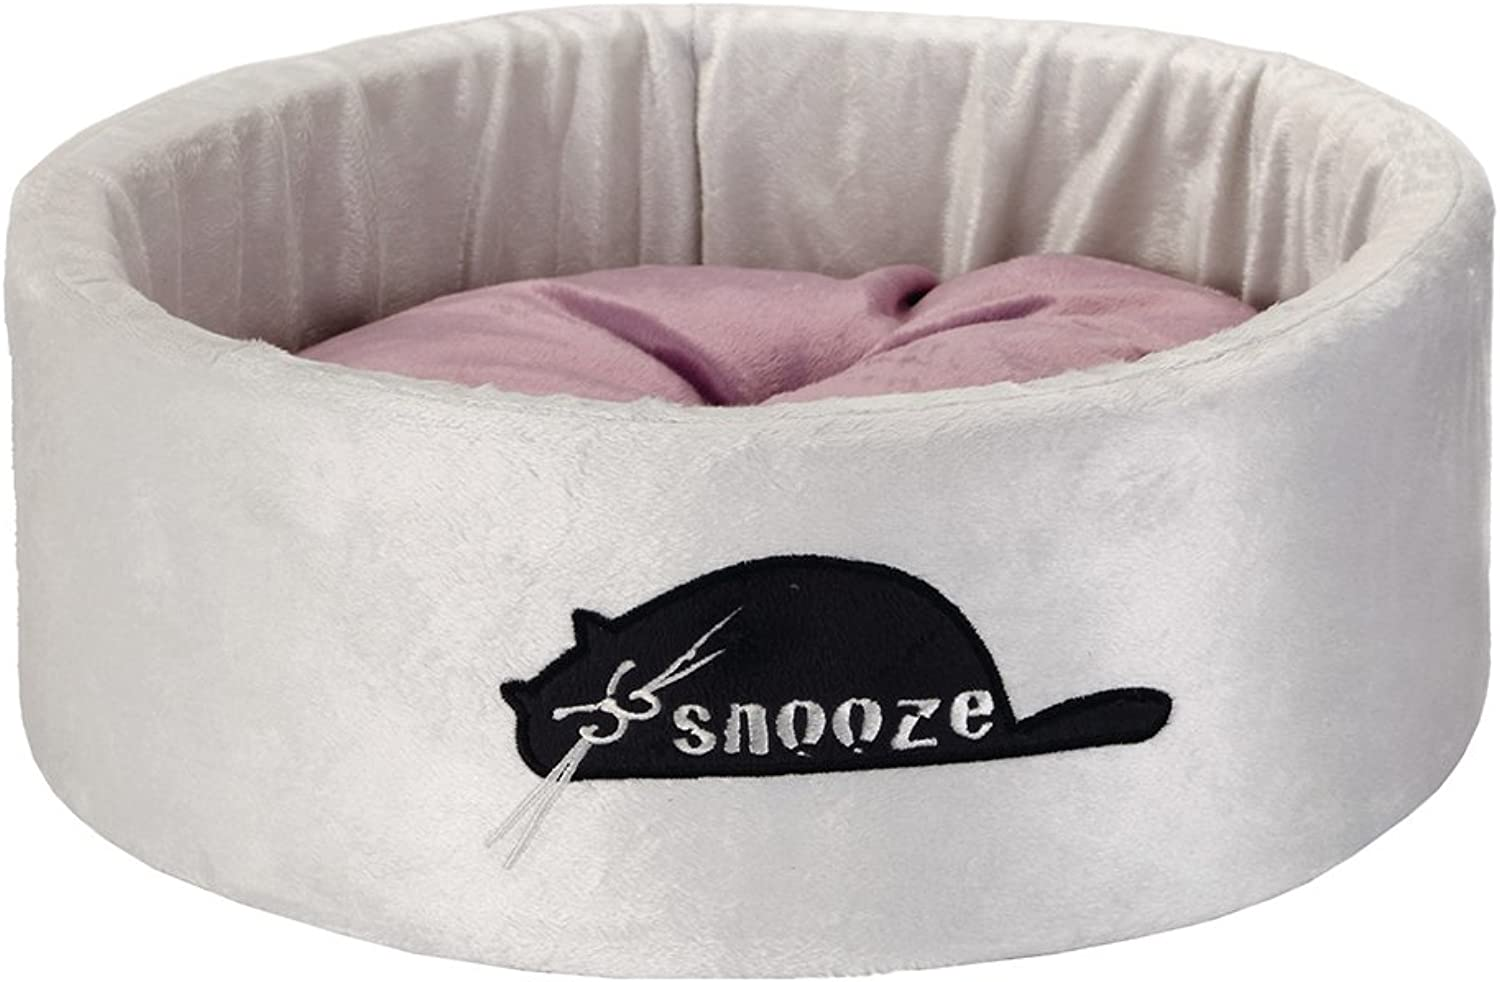 Beeztees Snooze Plush Rest Bed, 40 x 40 x 15 cm, Grey